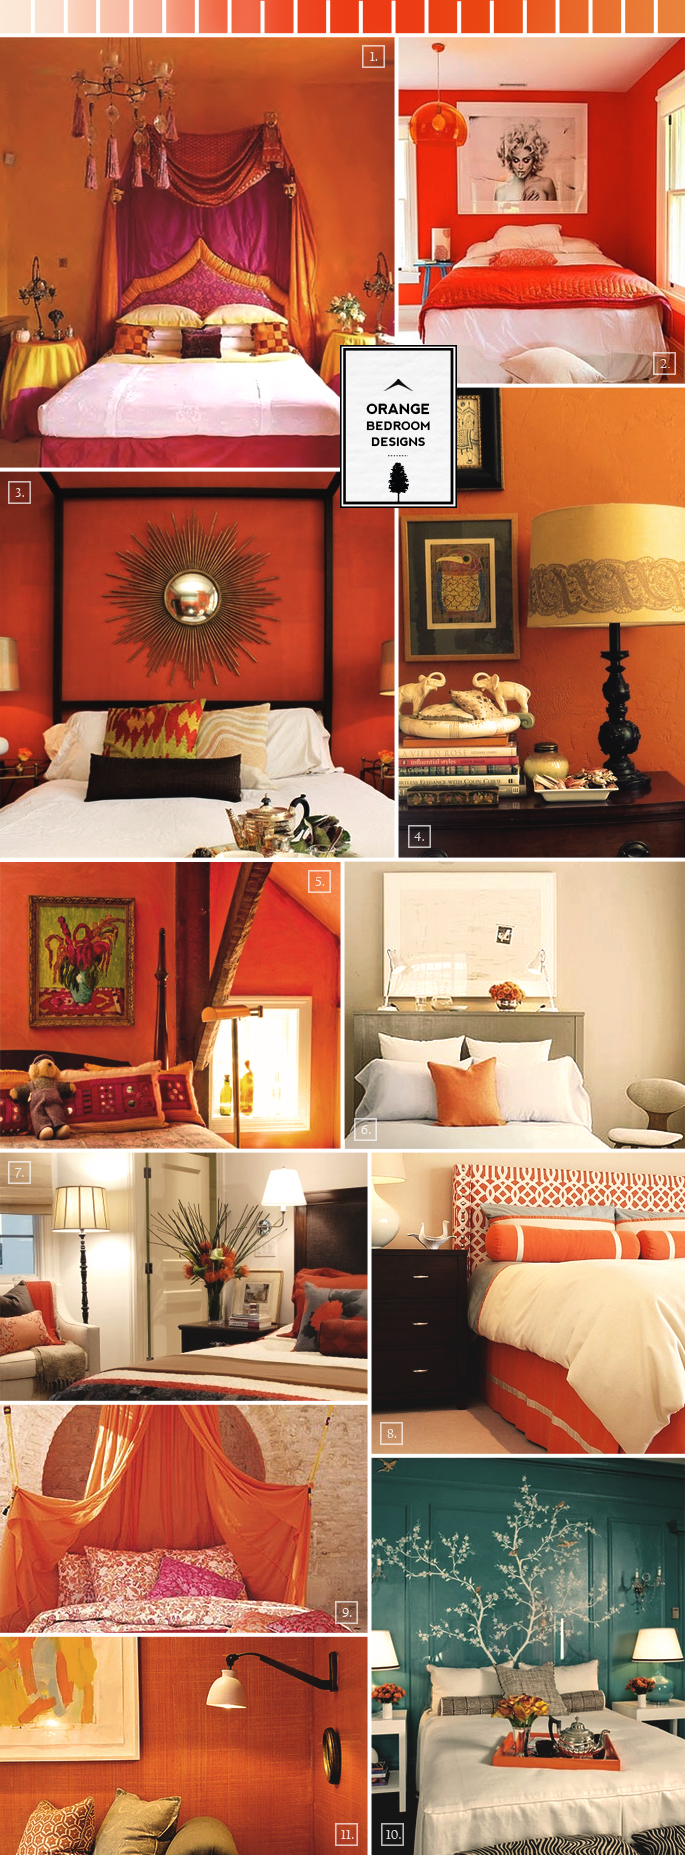 Design Tips And Pictures For Designing A Bedroom In Orange Home Tree Atlas